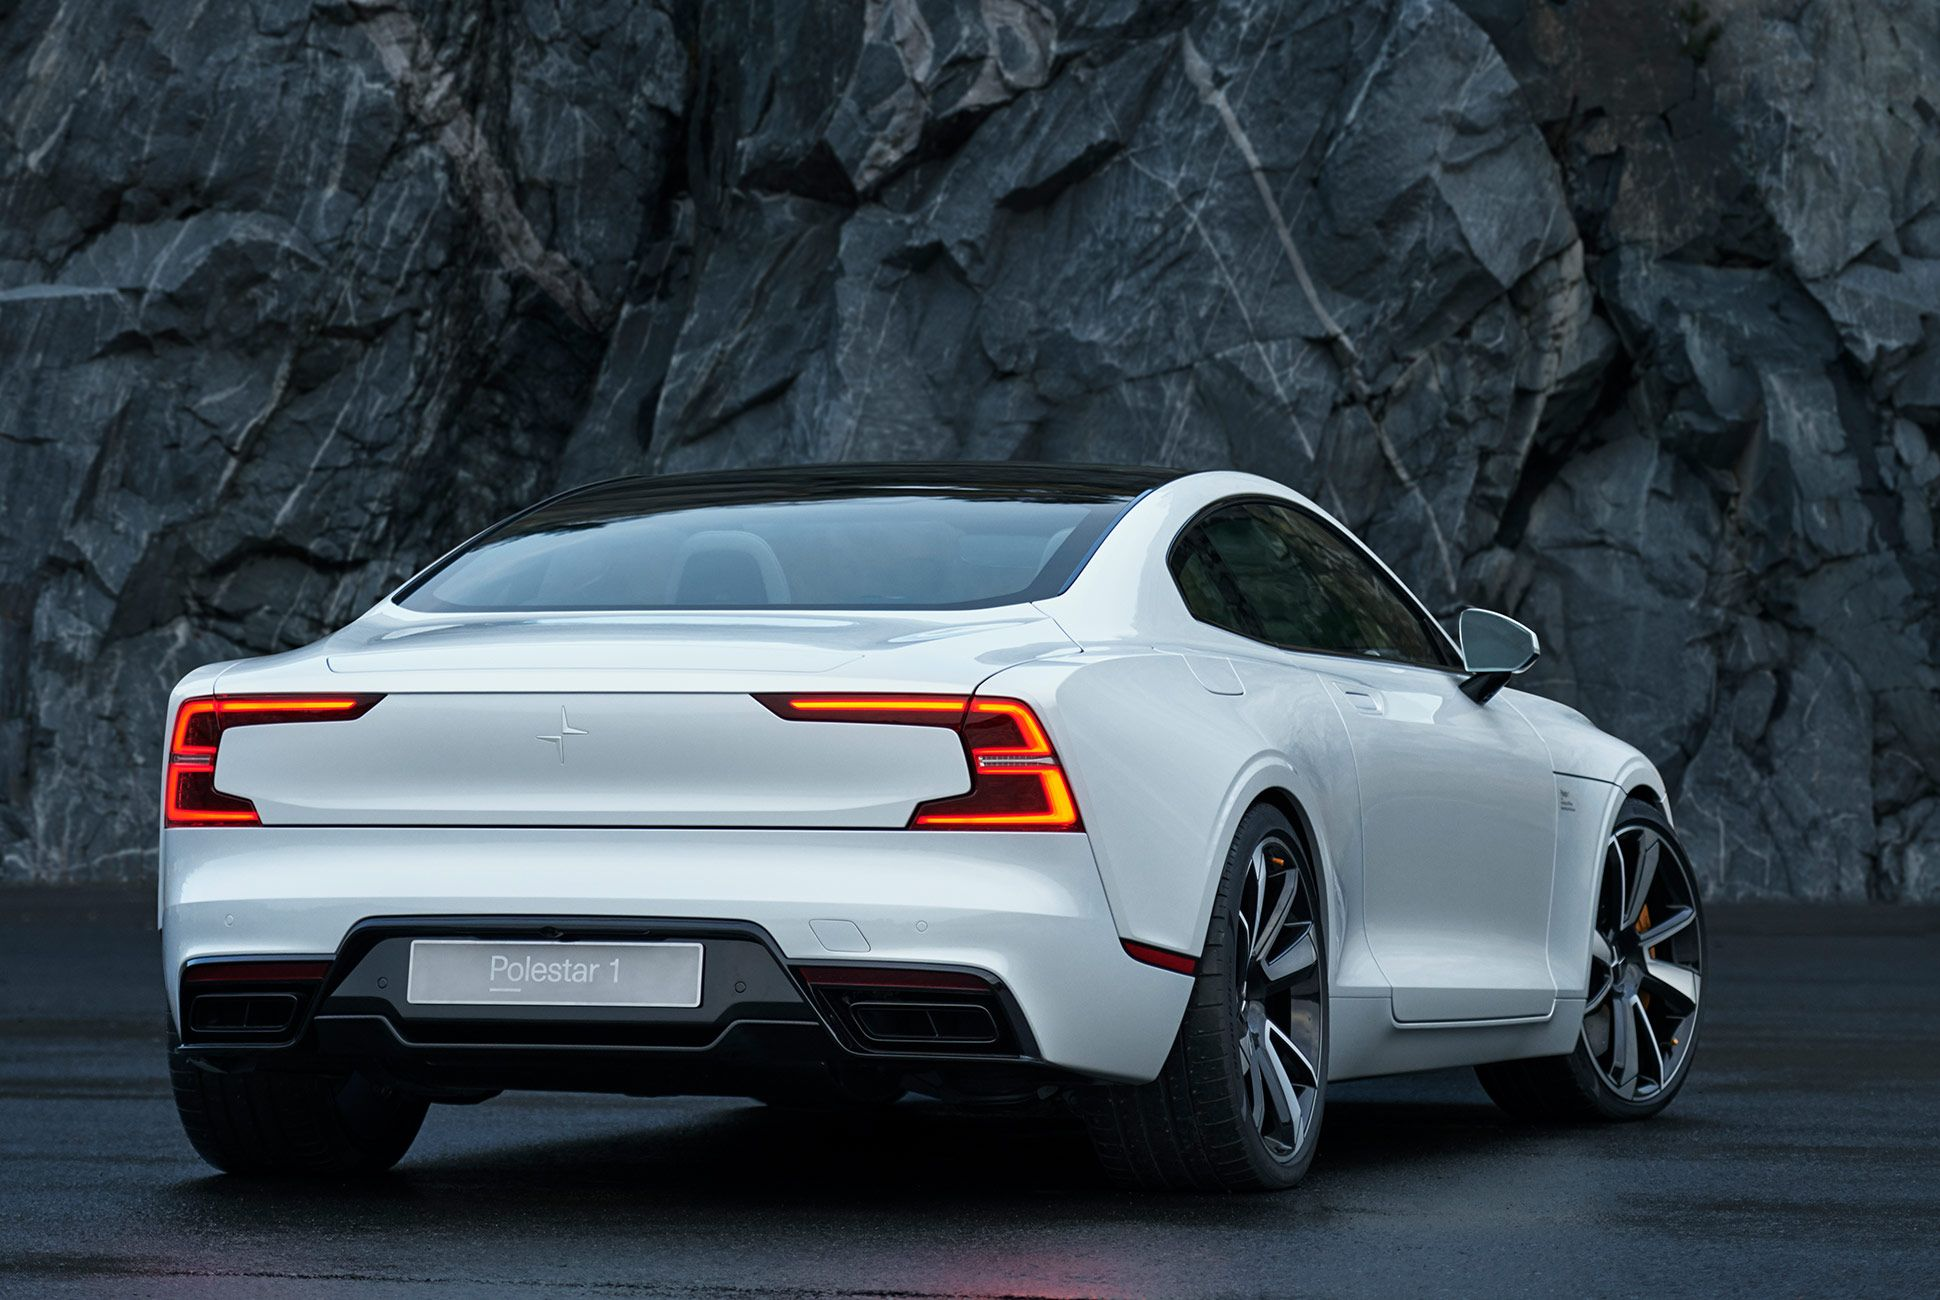 Polestar1-Car-gear-patrol-4